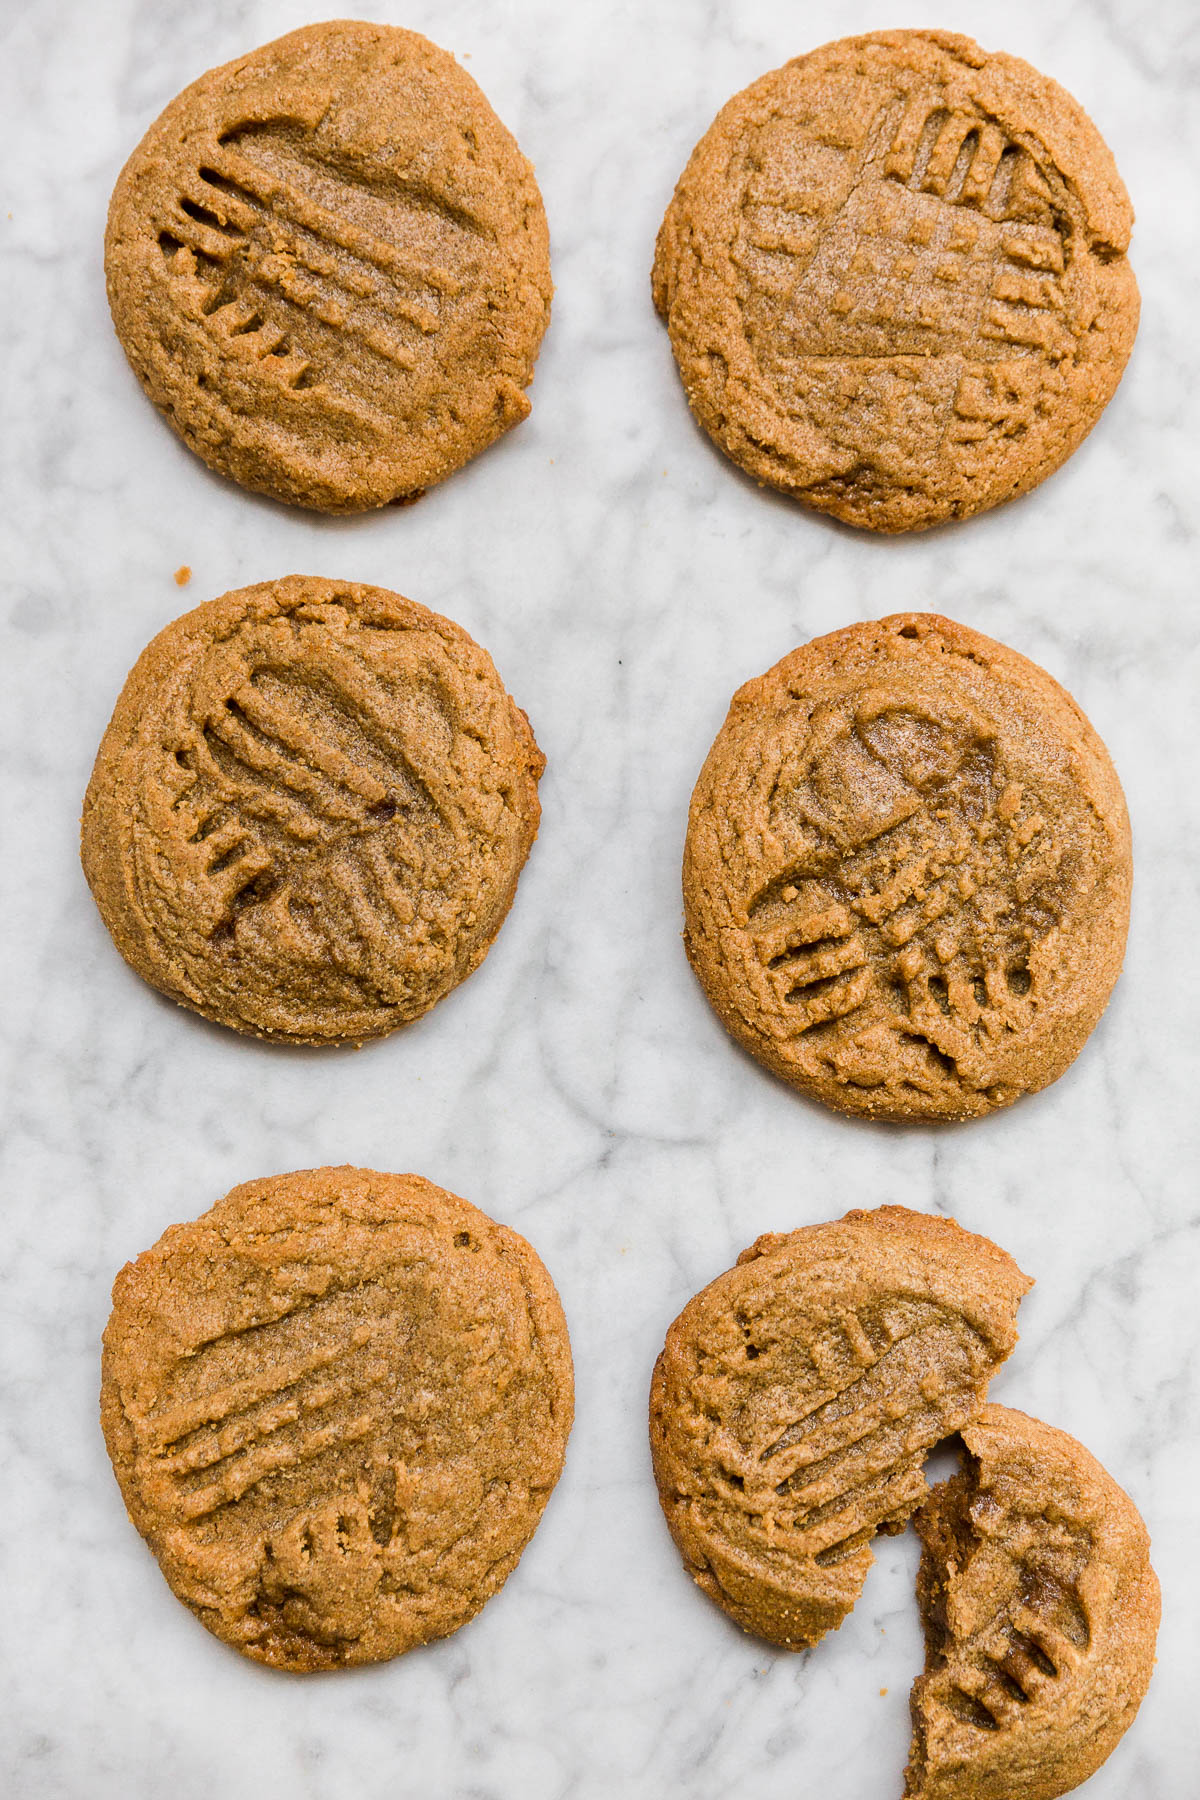 Aerial view of flourless peanut butter cookies in two rows with one cookie broken.